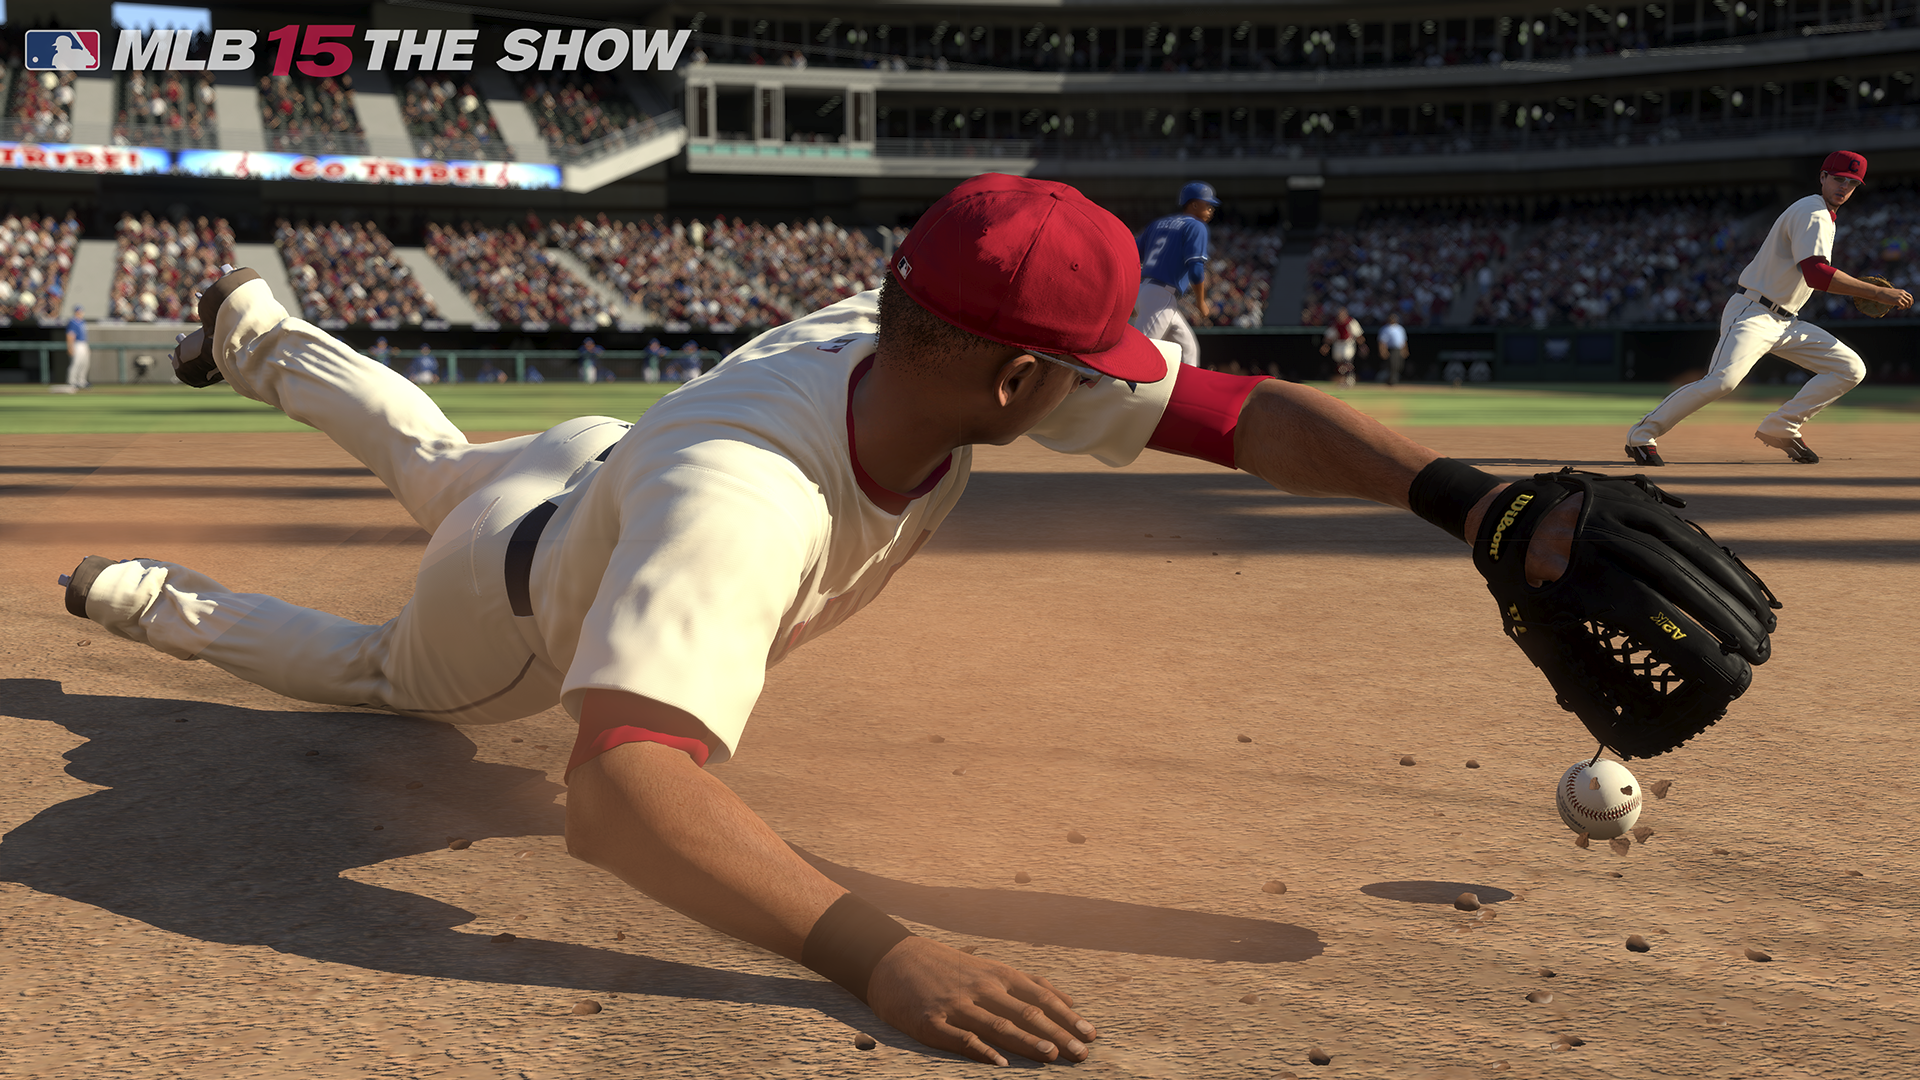 Mlb the show 15 release date in Melbourne